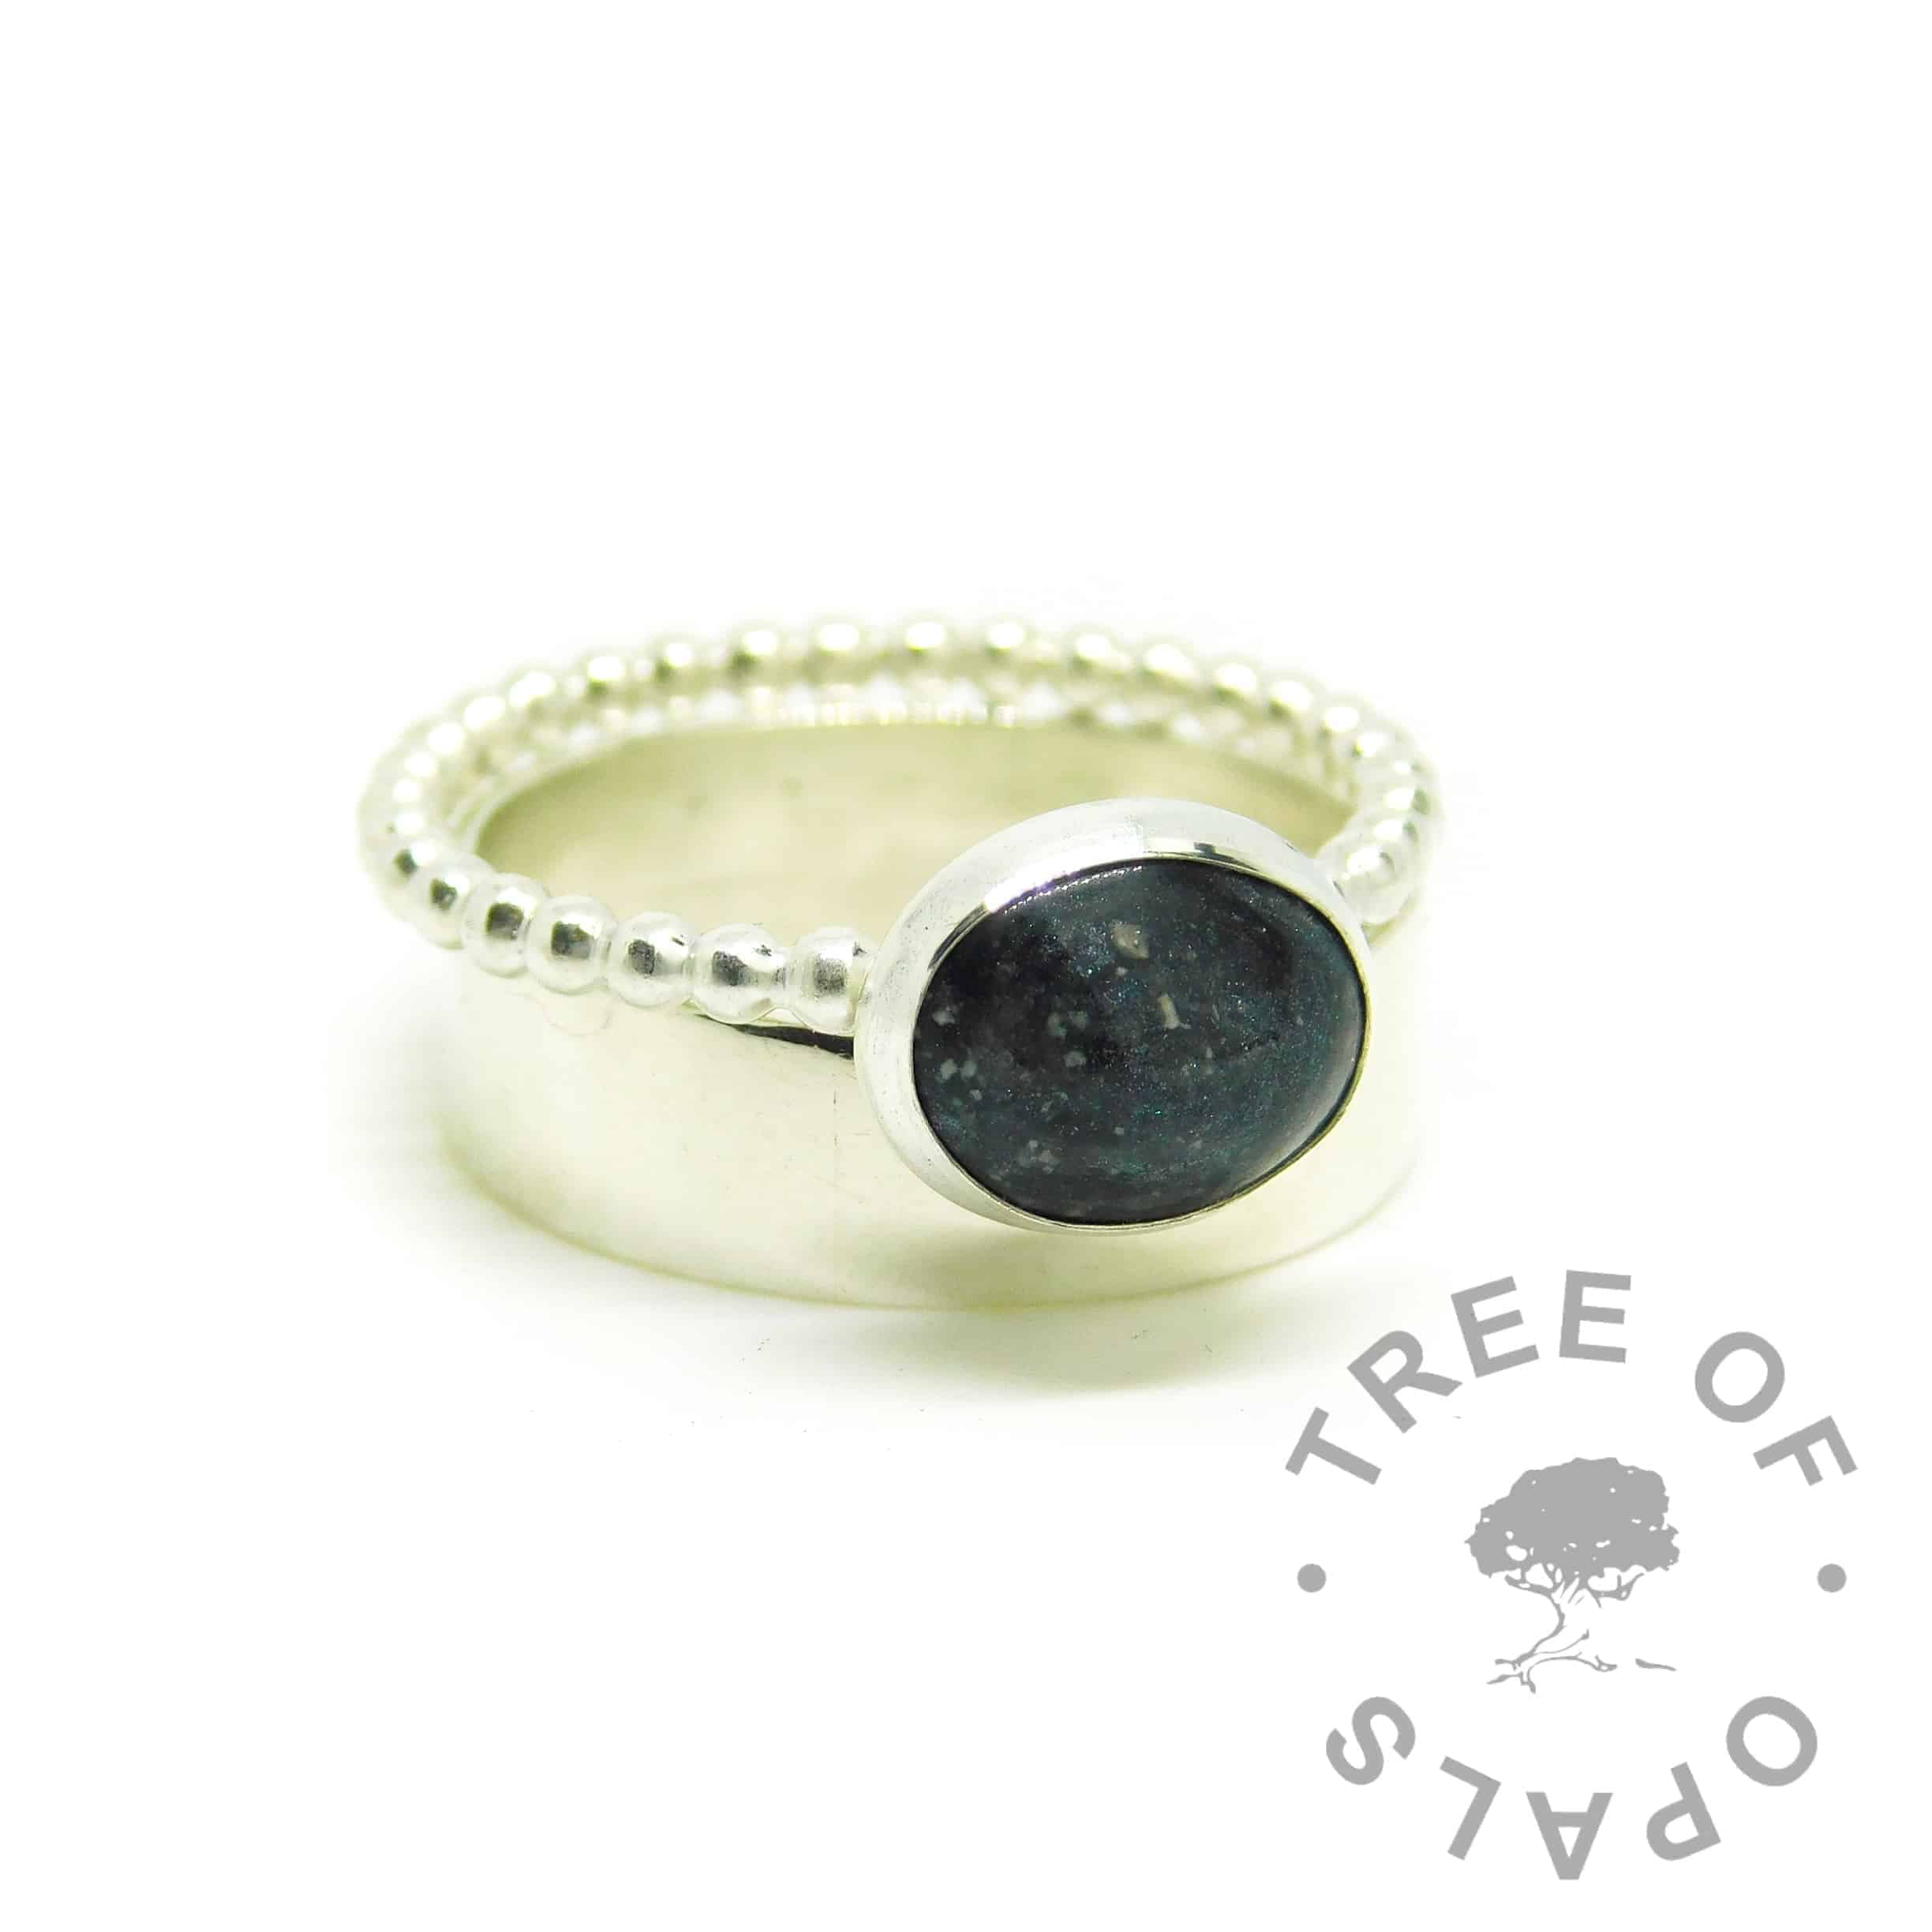 black ashes jewellery ring on Argentium silve 935 bubble wire band. Vampire black resin sparkle mix. Solid Argentium 935 purity silver band. 6mm shiny band, engravable